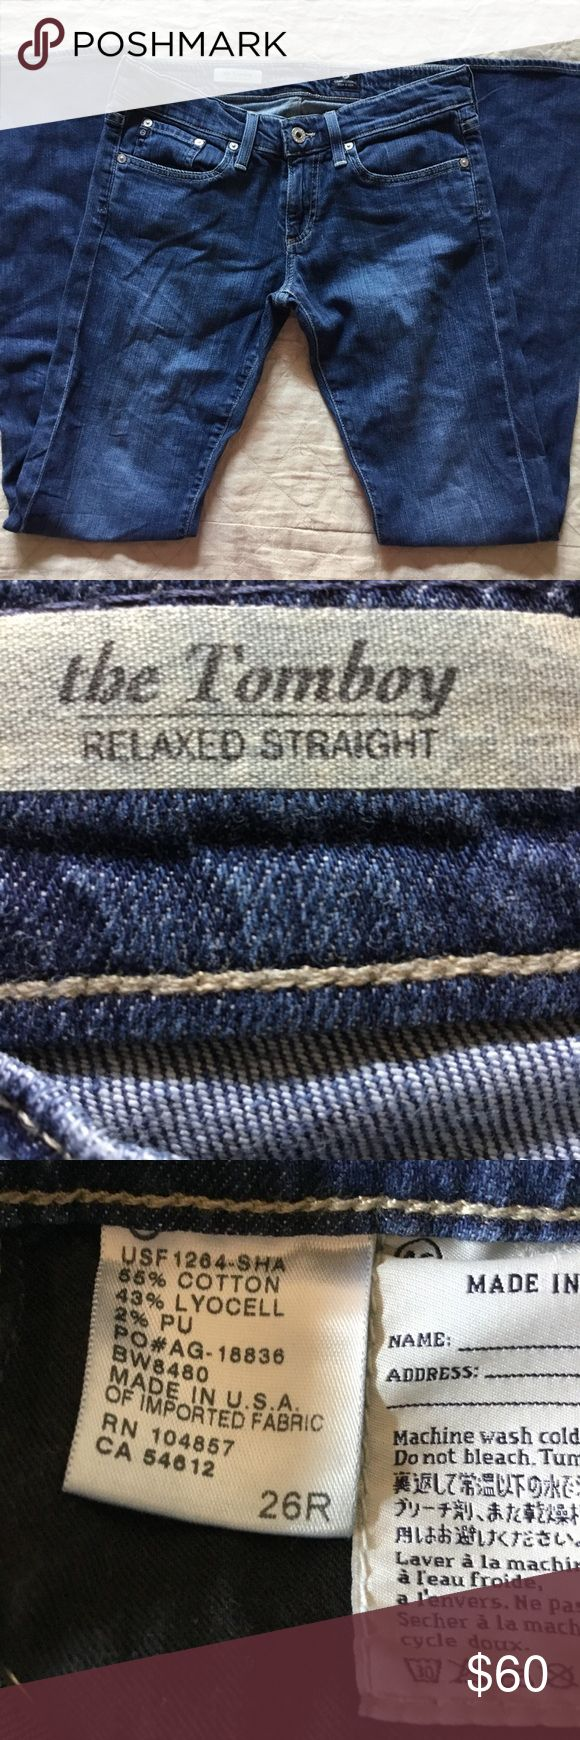 "AG - Adriano Goldschmied ""the Tomboy"" jeans, AG - Adriano Goldschmied ""the Tomboy"" Jeans, size 26.  Excellent condition! Ag Adriano Goldschmied Jeans"